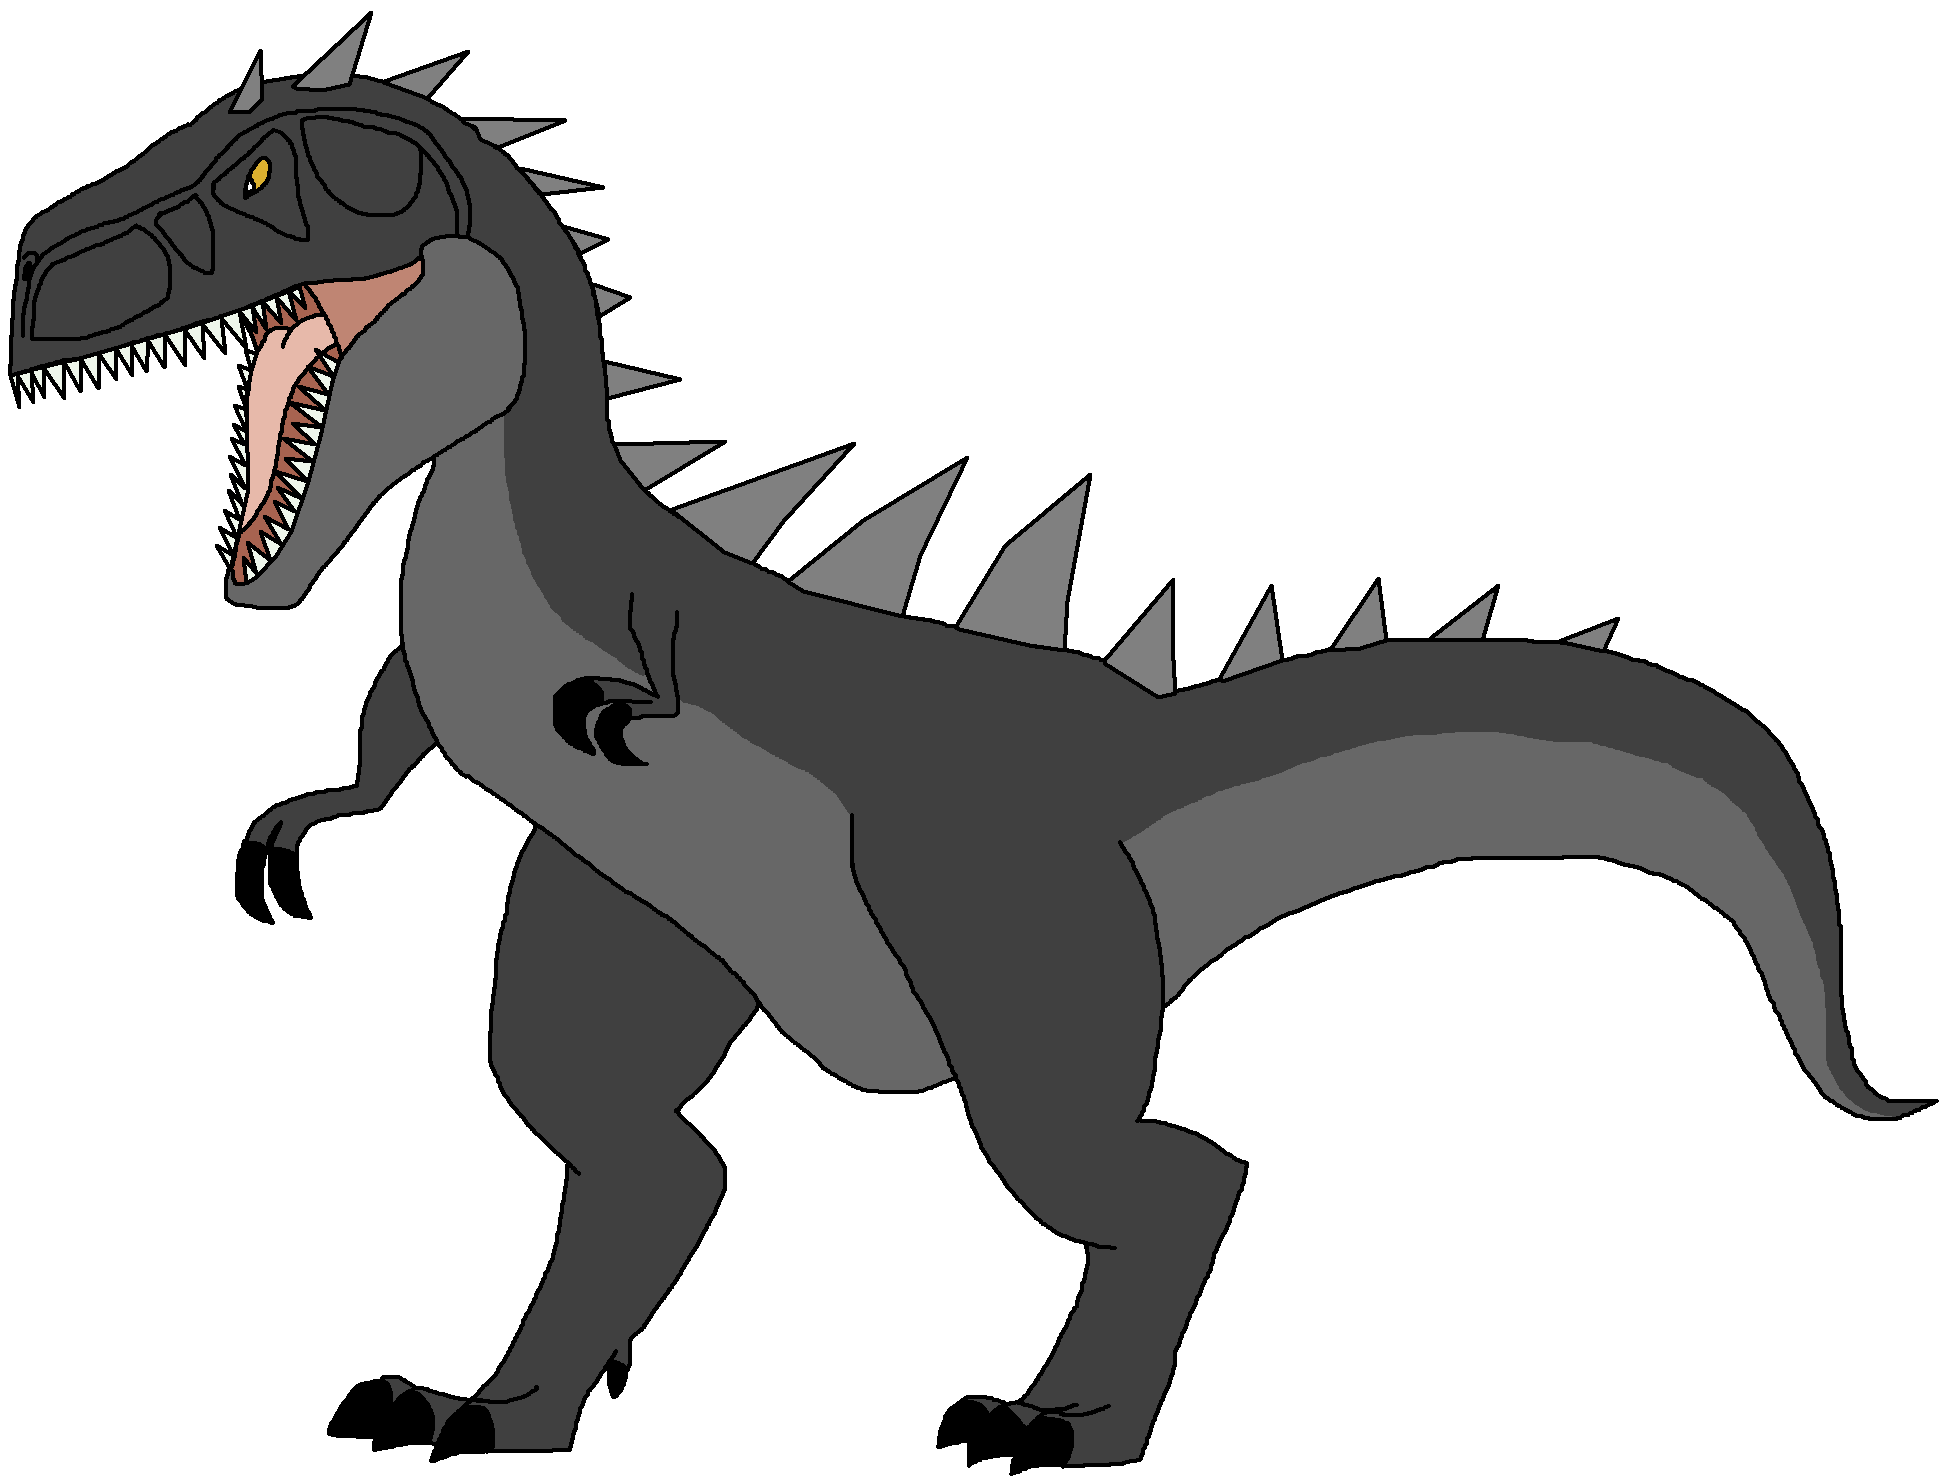 tyrannotitan dinosaur pedia wikia fandom powered by wikia